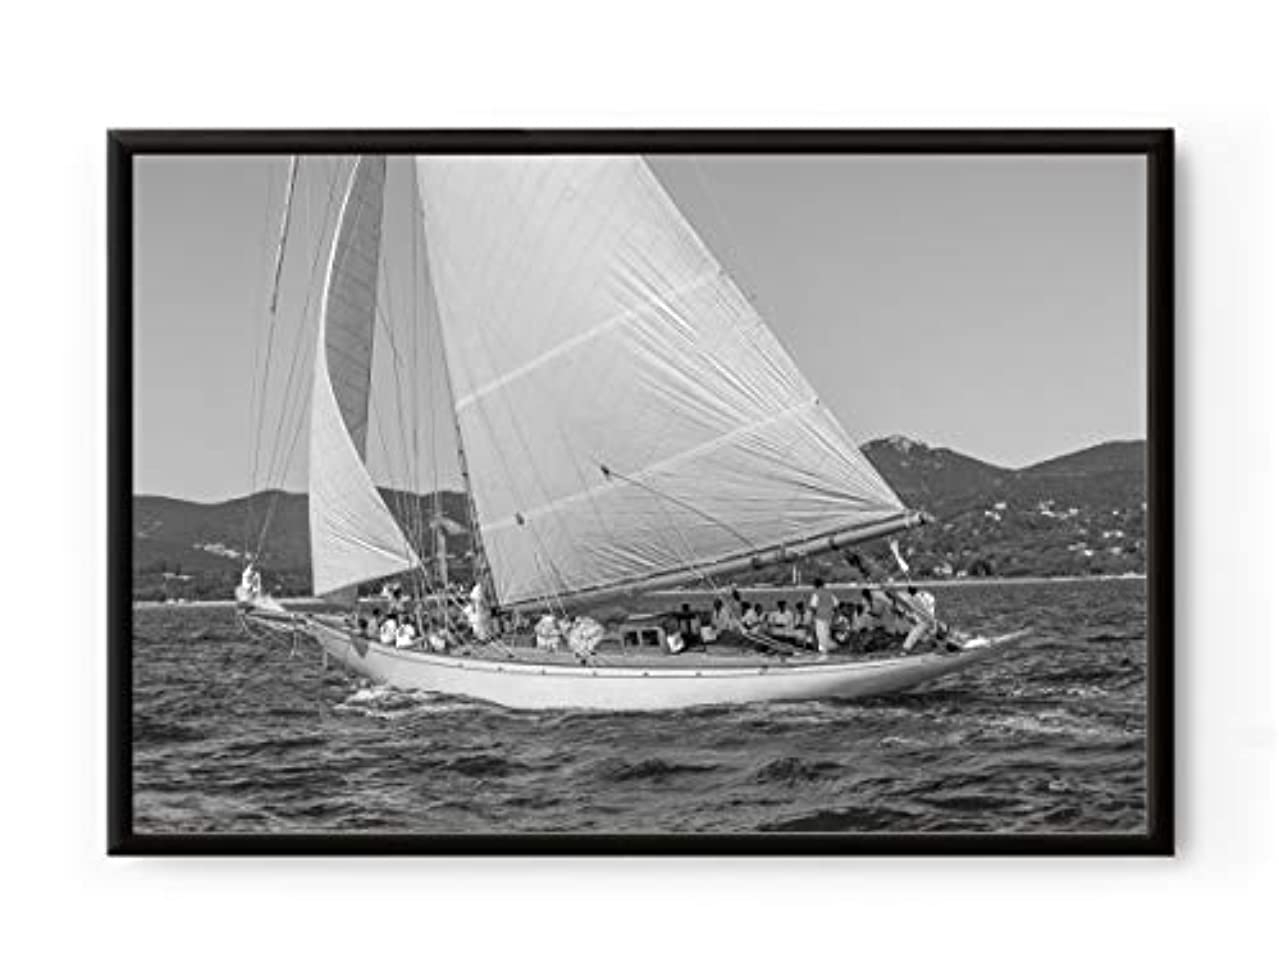 Solid Oak Sailing Boat, Natural Frame, with Mount, Multicolored, 20x30